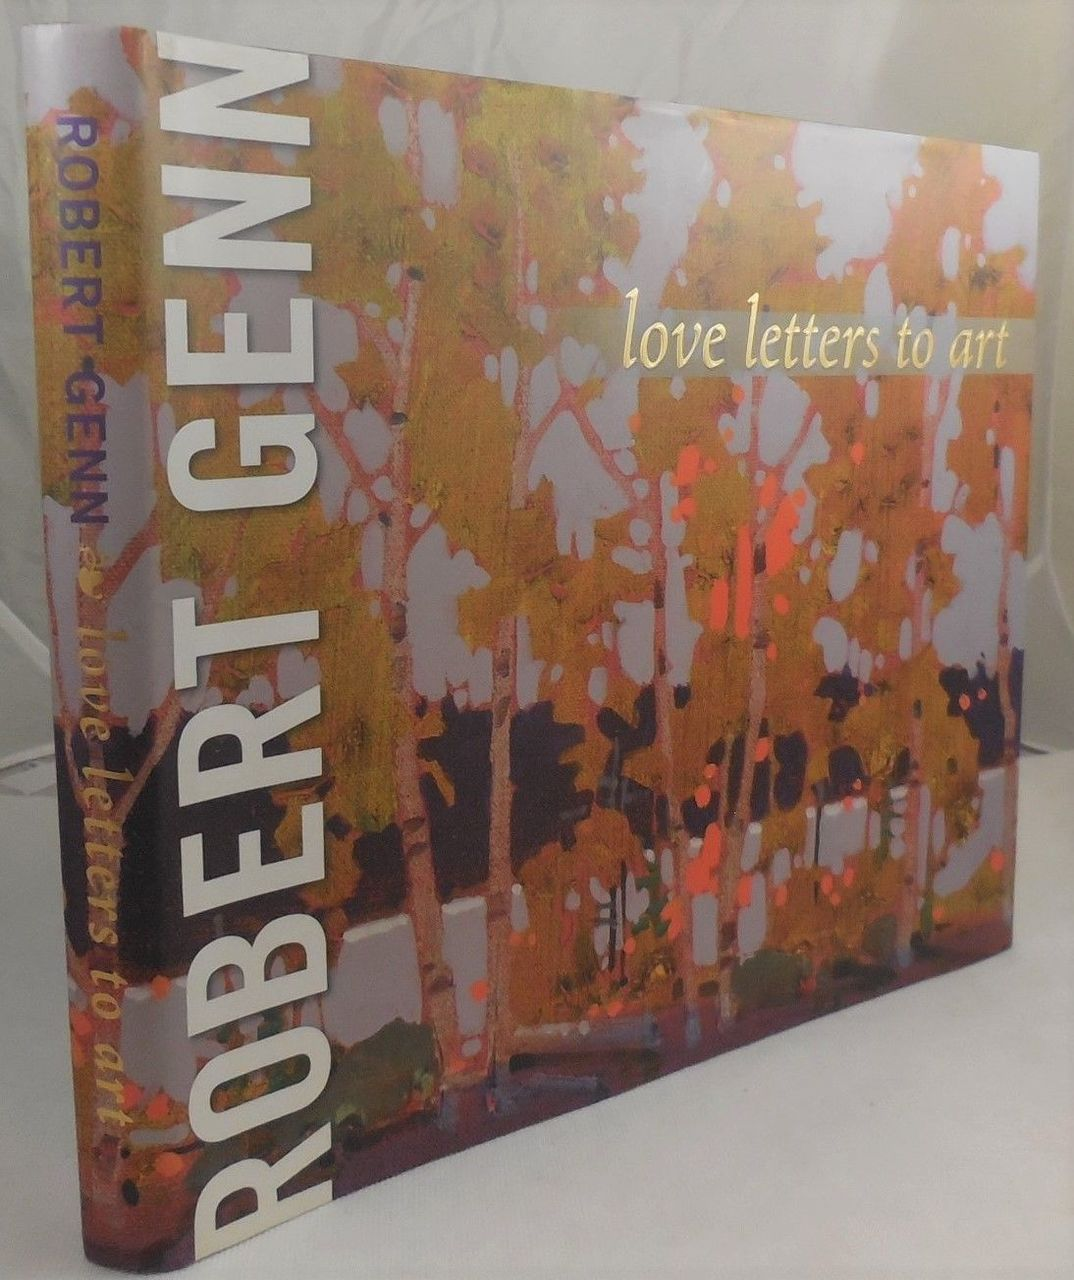 LOVE LETTERS TO ART, by Robert Genn - 2007 Fine Art Process and Analysis